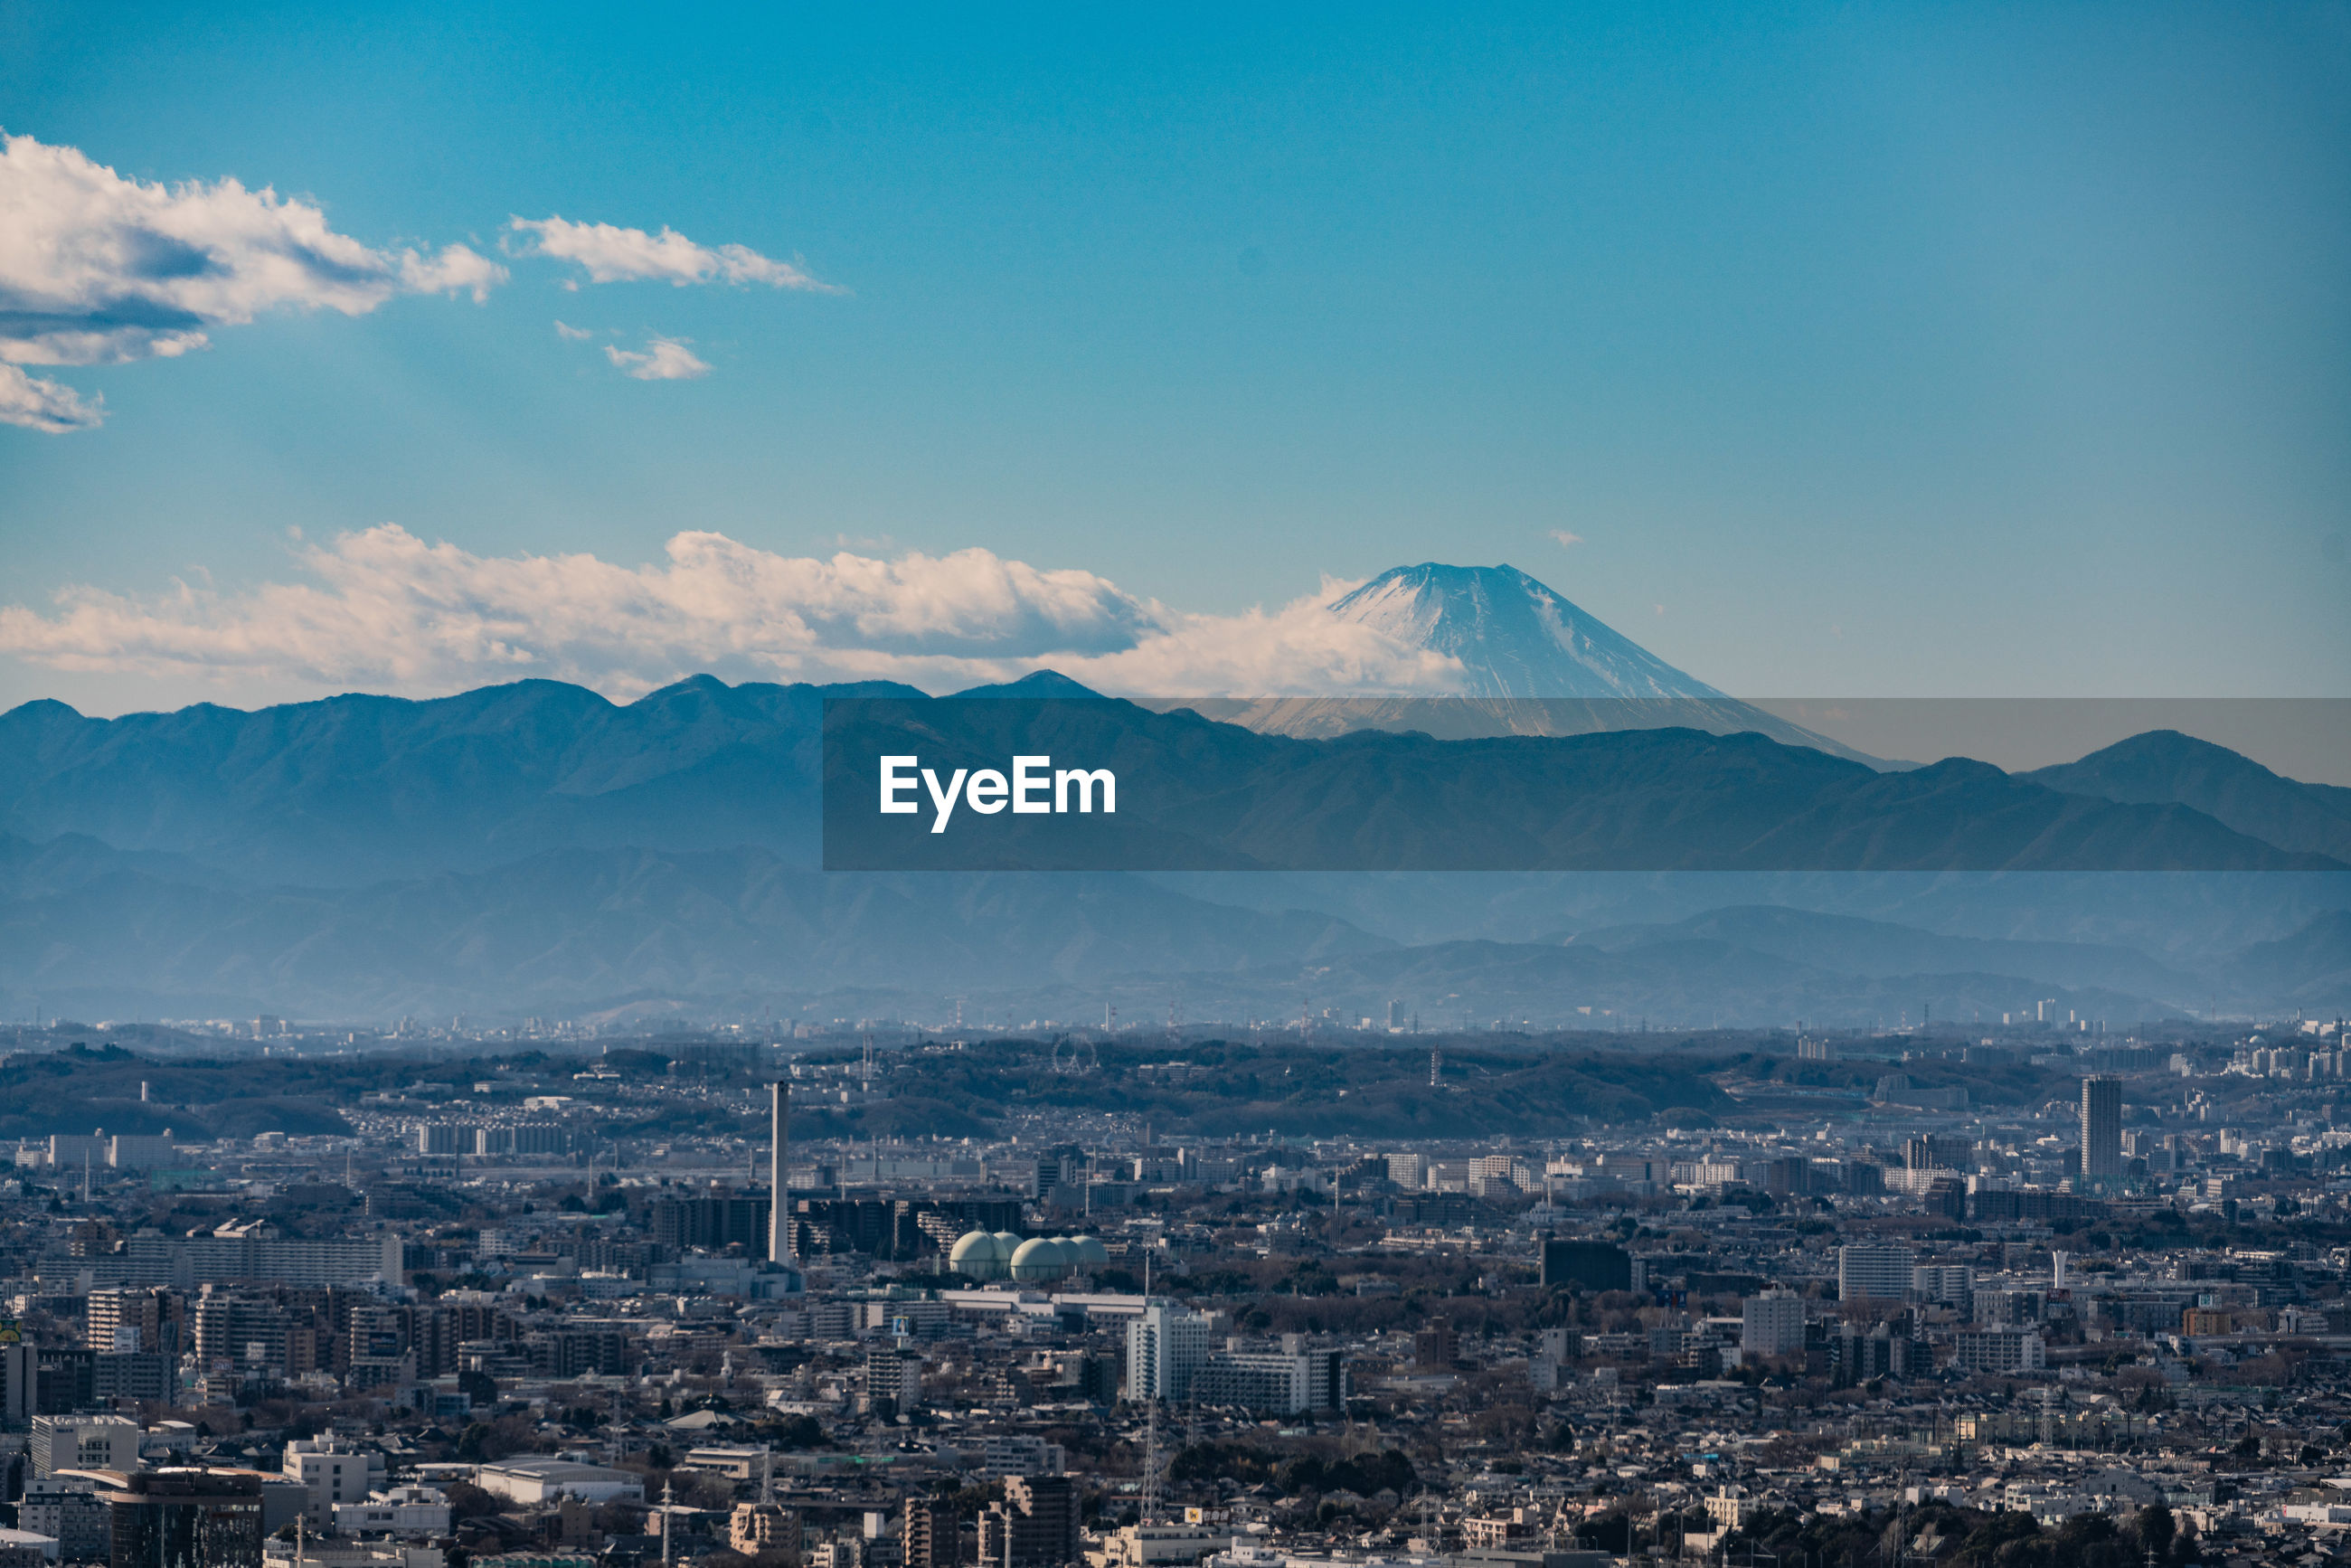 AERIAL VIEW OF CITYSCAPE AGAINST MOUNTAINS